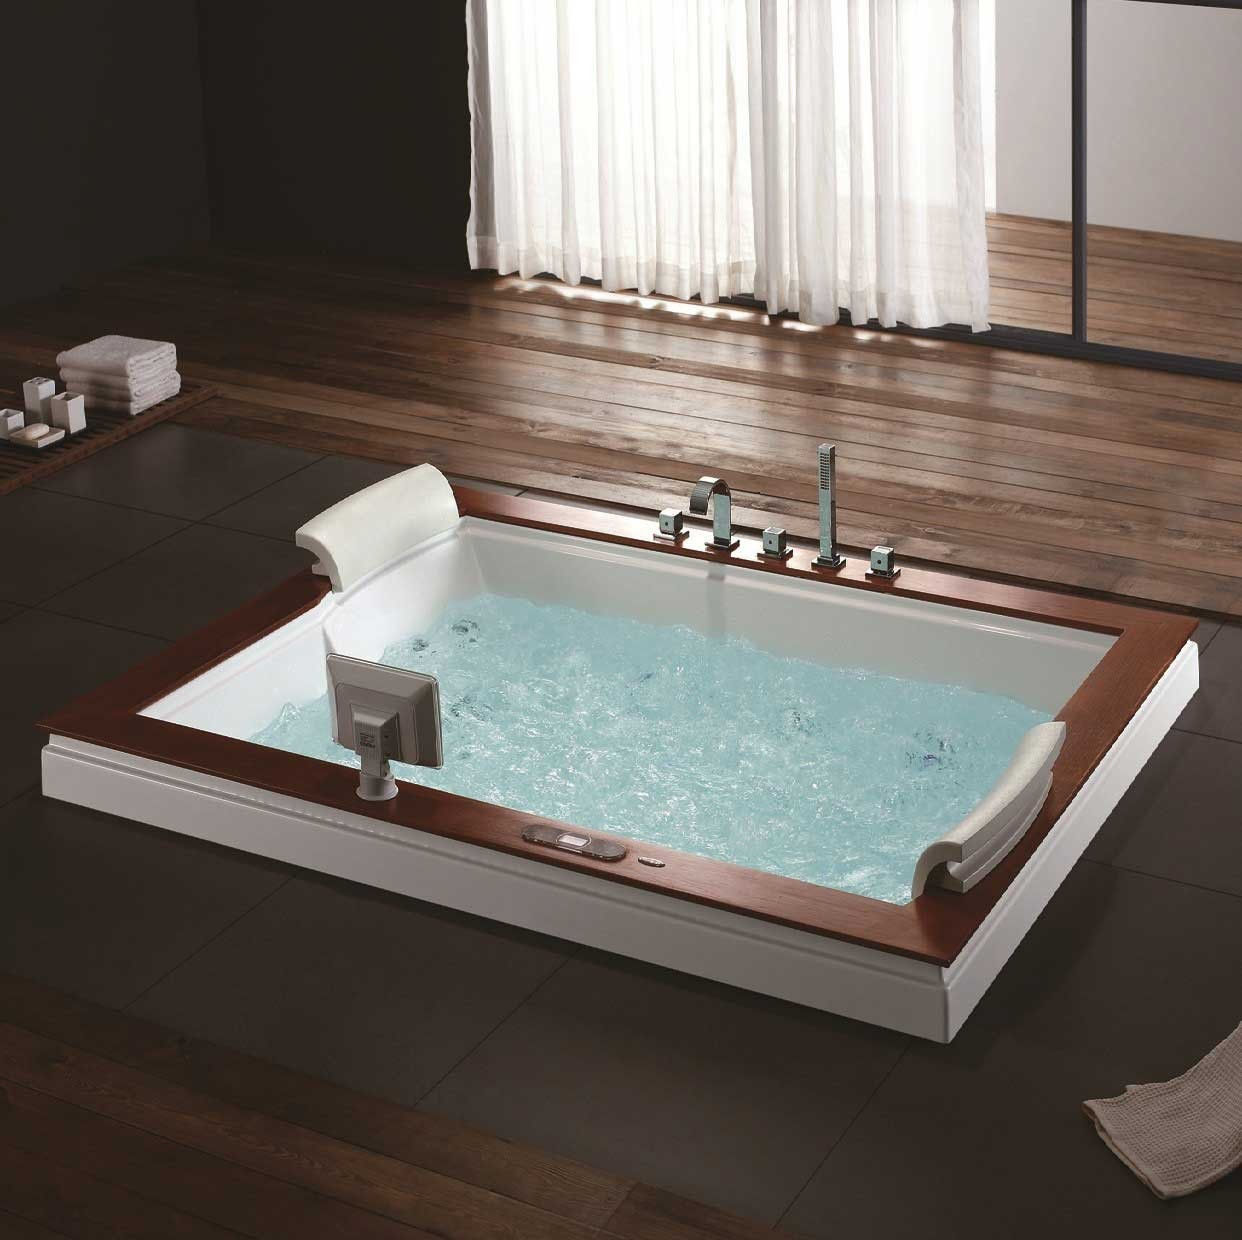 Burlington Luxury Whirlpool Tub on bathroom floor tile with copper tub, bathroom freestanding bath tub, bathroom bathtub design, bathroom tile design, bathroom rich people houses, bathroom design ideas, bathroom shower with glass, bathroom plumbing layout diagram, modern two-person tub, corner clawfoot tub, bathroom remodel, small bathroom designs with tub, bathroom soaking tub, bathroom design with sunken tub, bathroom design shower,